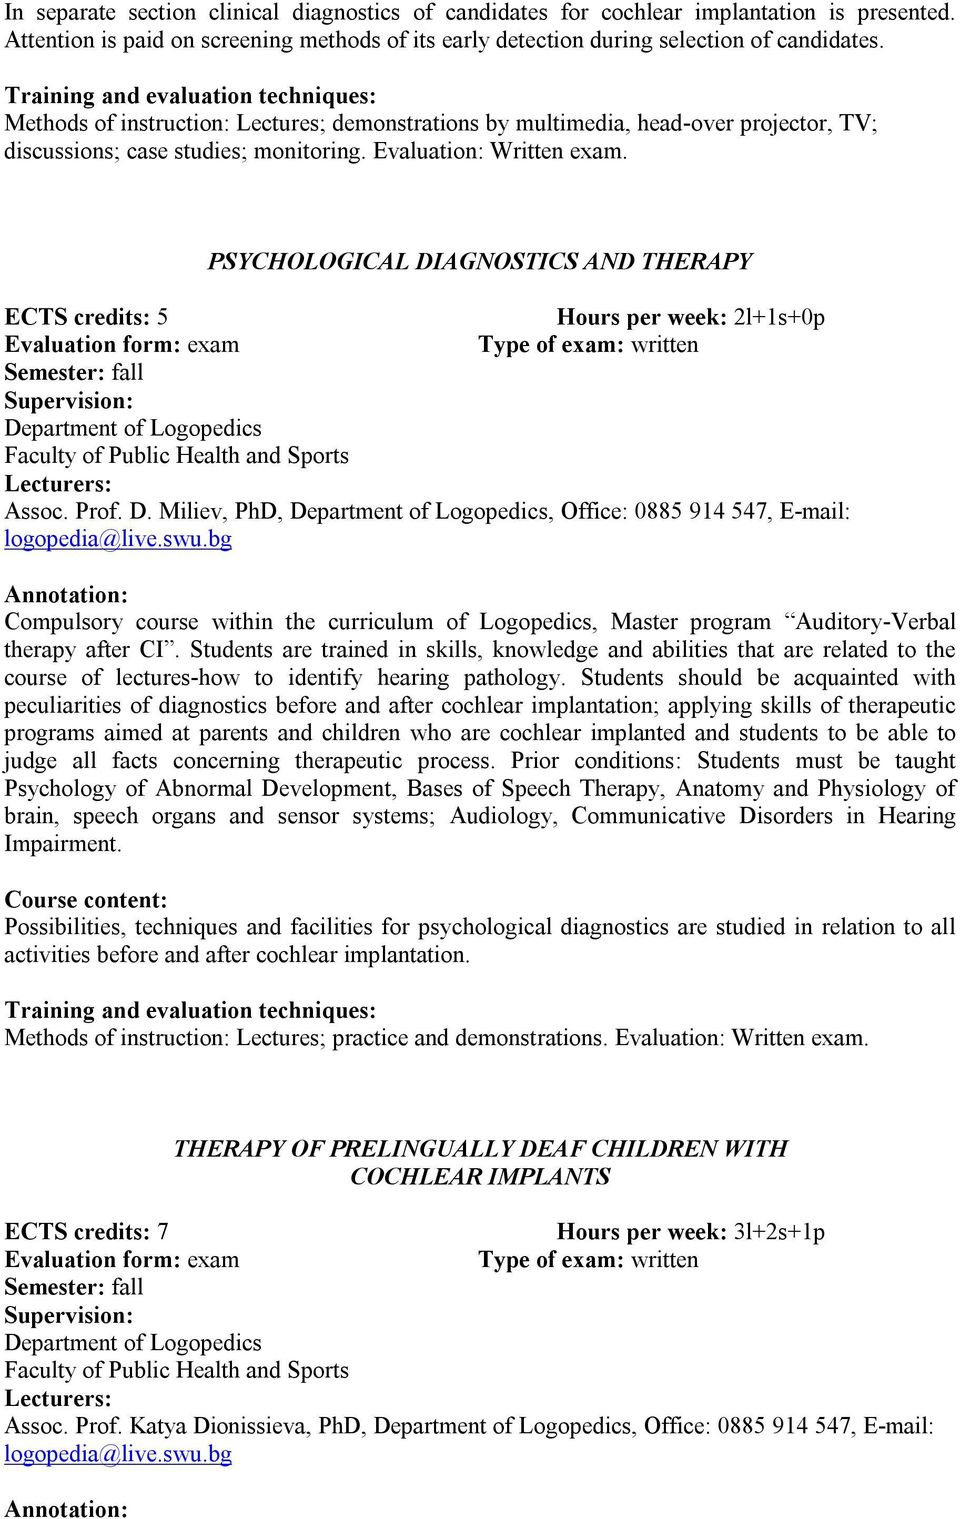 PSYCHOLOGICAL DIAGNOSTICS AND THERAPY ECTS credits: 5 Assoc. Prof. D. Miliev, PhD,, Office: 0885 914 547, E-mail: Compulsory course within the curriculum of Logopedics, Master program Auditory-Verbal therapy after CI.